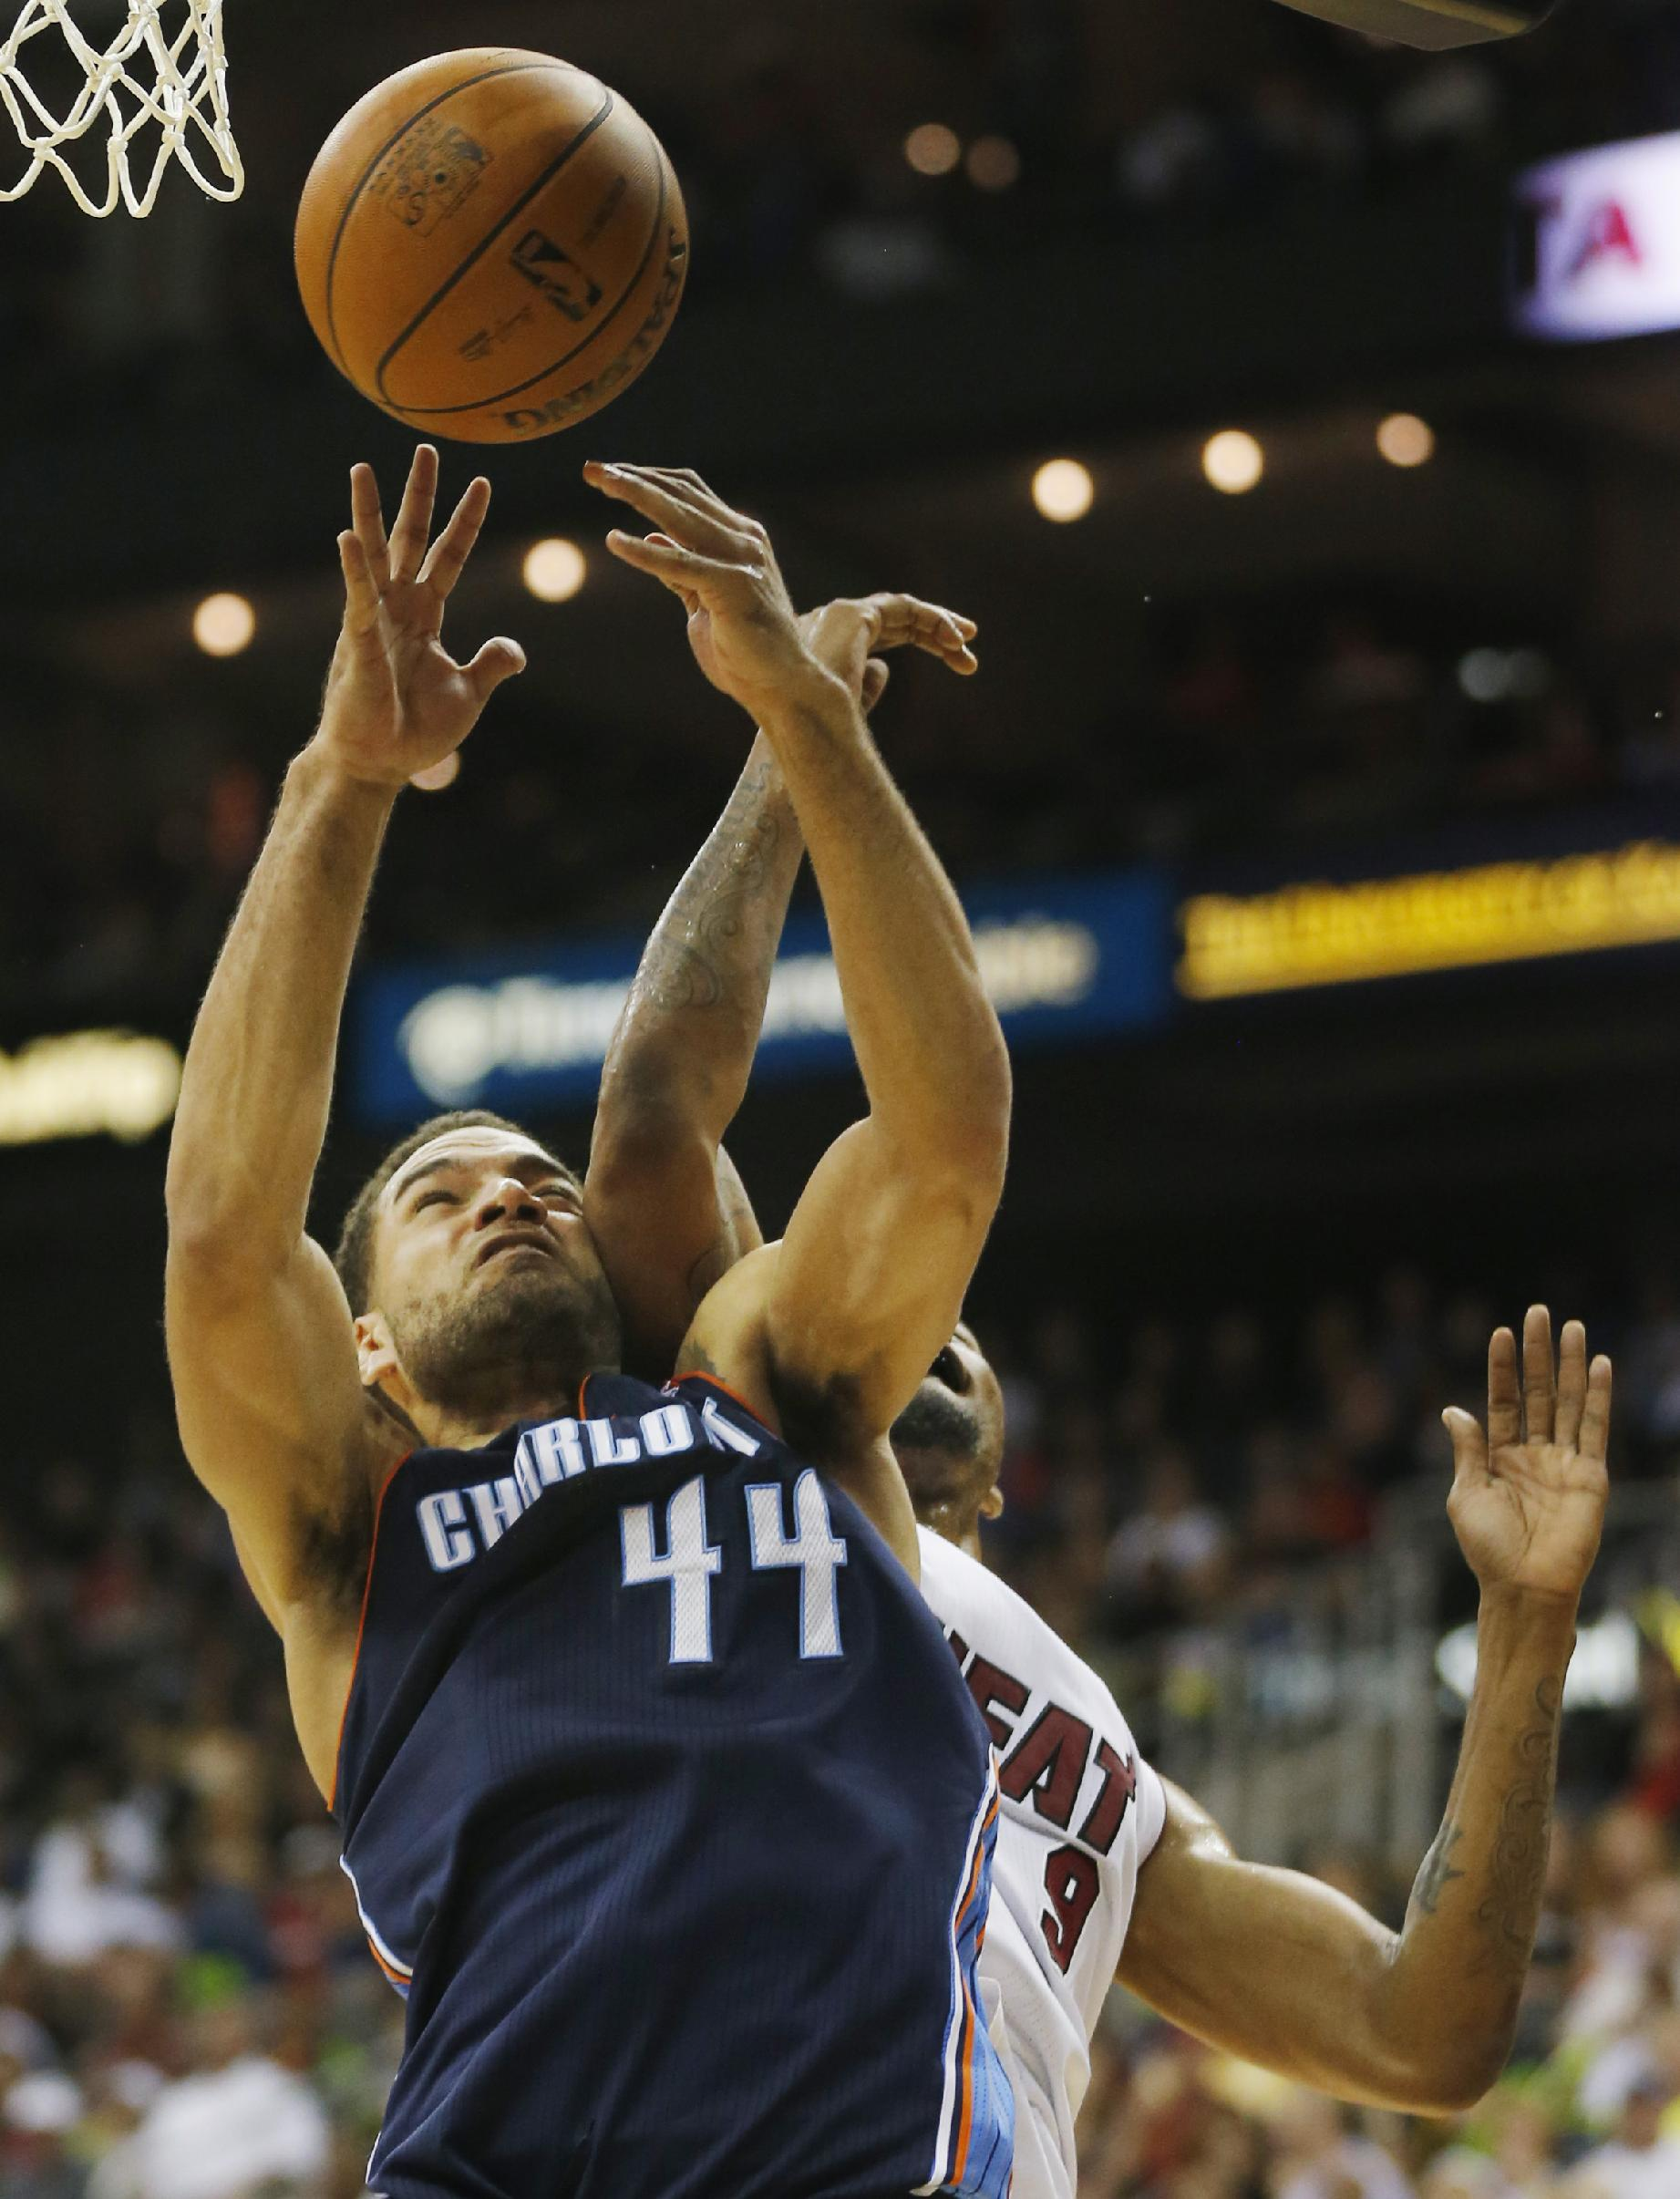 Charlotte Bobcats forward Jeffery Taylor (44) catches an elbow from Miami Heat forward Rashard Lewis (9) during the second half of a preseason NBA basketball game in Kansas City, Mo., Friday, Oct. 11, 2013. The Heat defeated the Bobcats 86-75